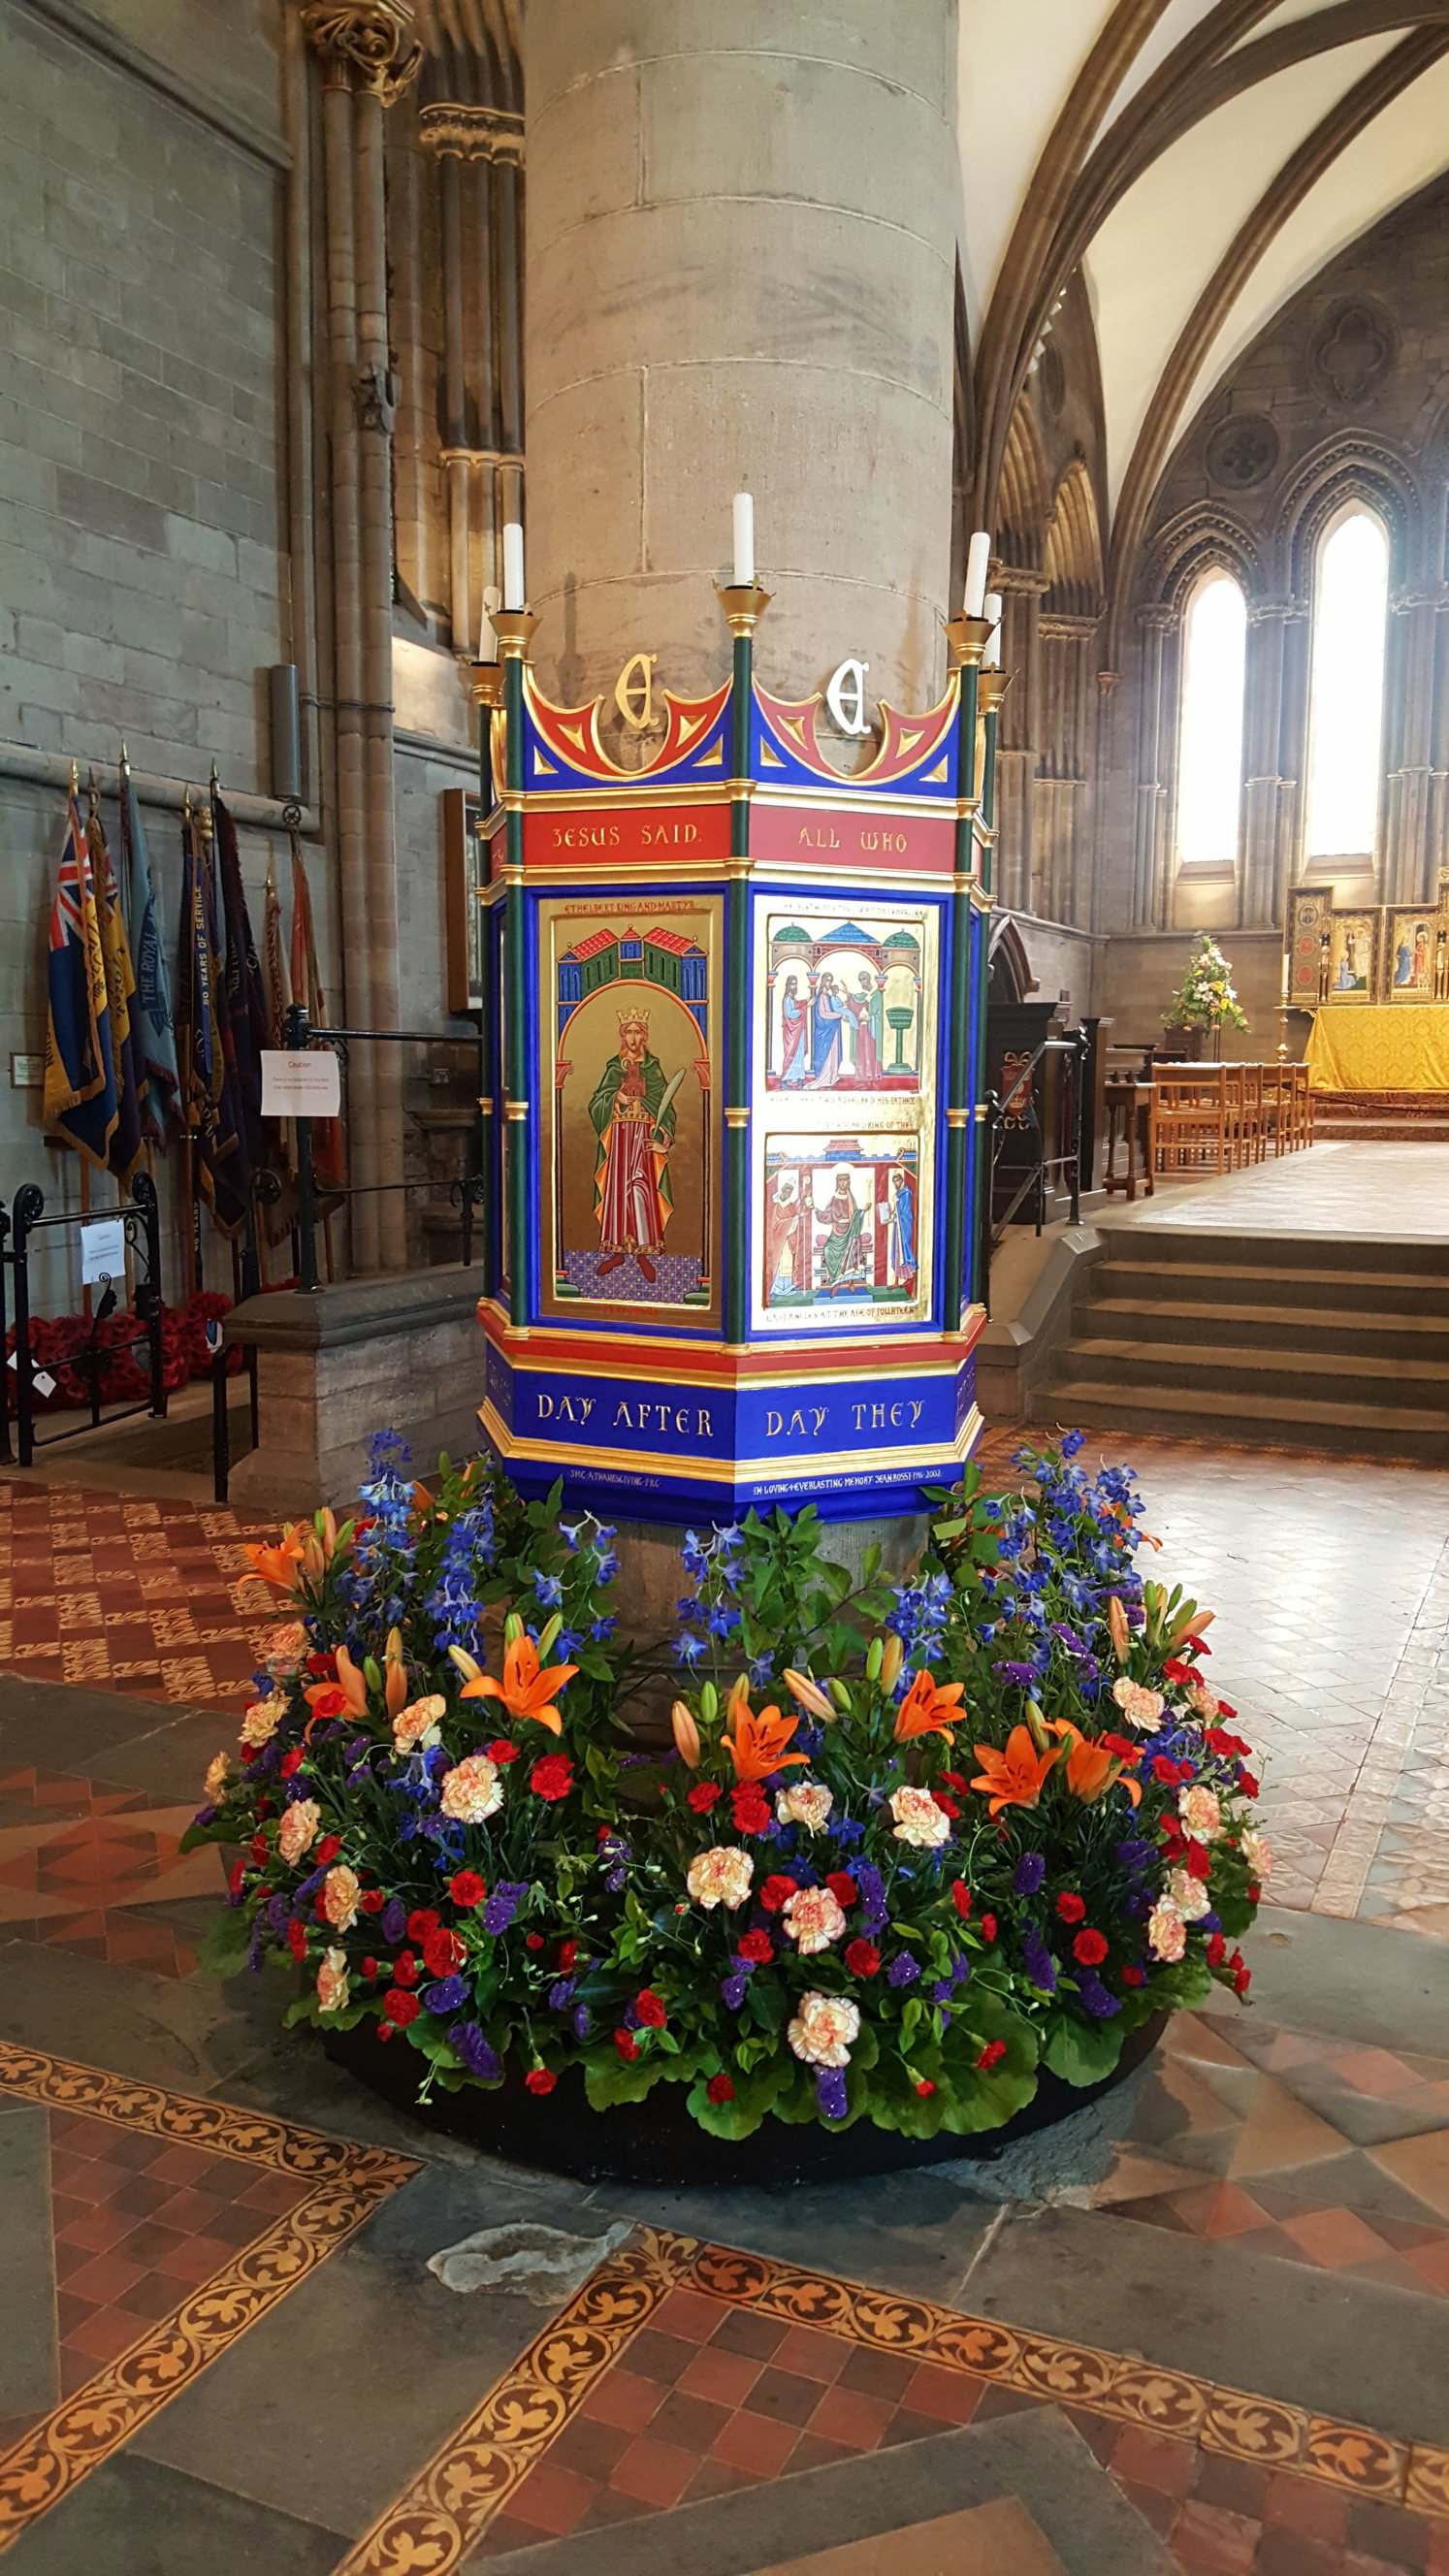 The shrine at the entrance to the Lady Chapel, there are huge floral displays at the base of the shrine picking out key colours - blue, red and gold